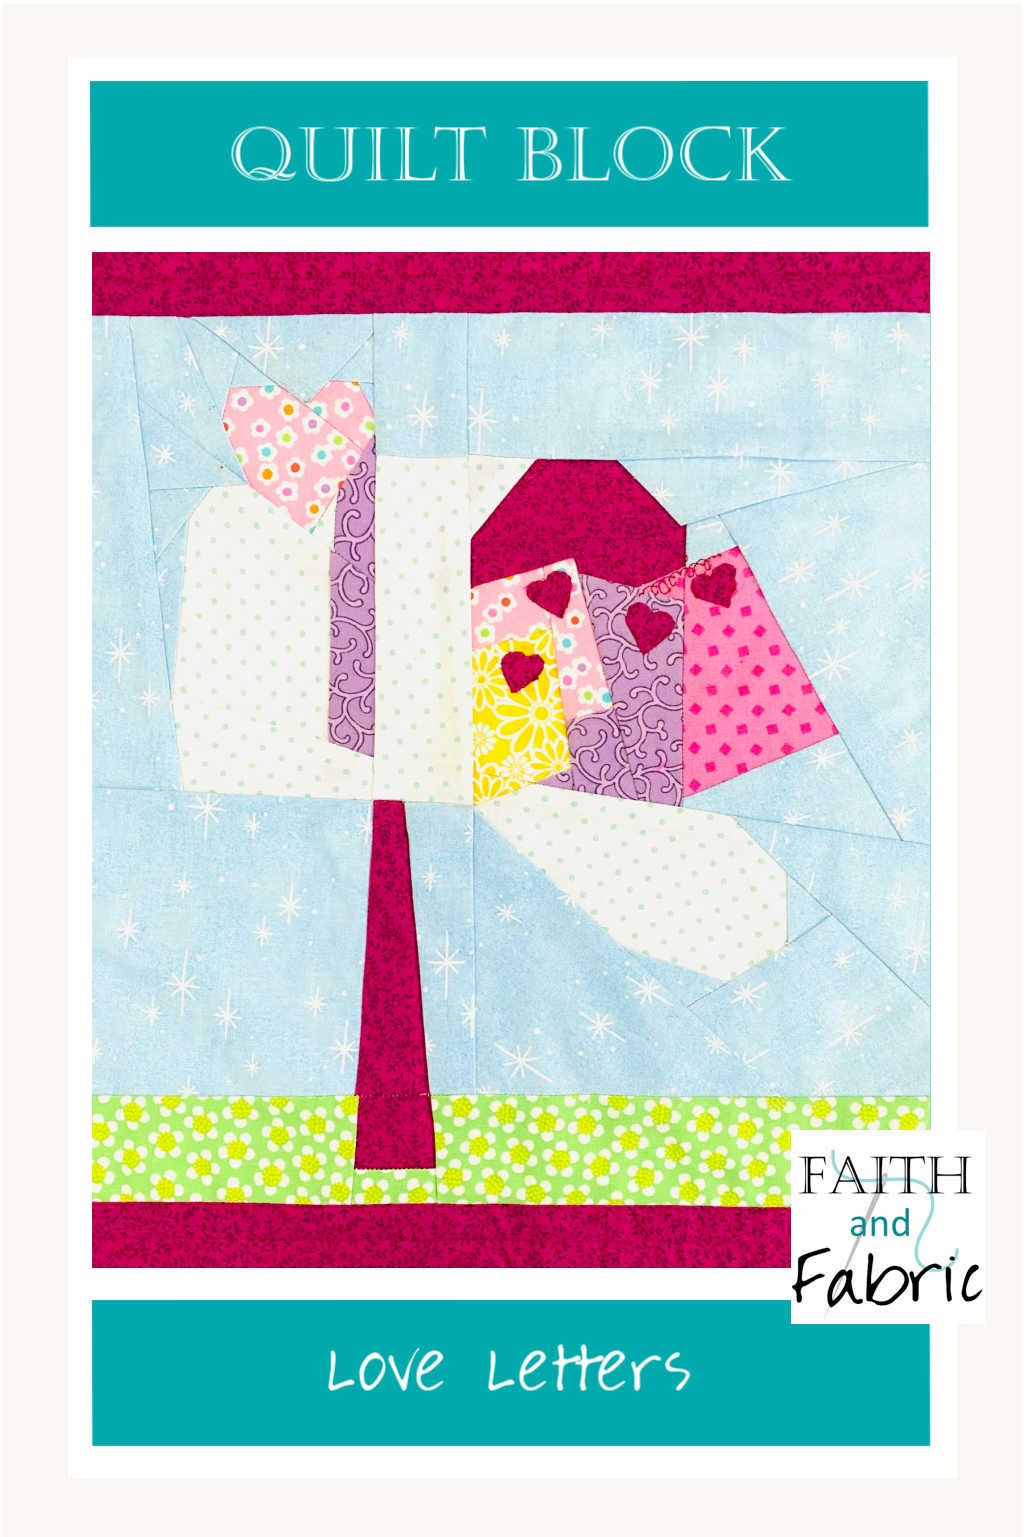 Sew an adorable quilt block pattern of these little love notes for St. Valentine's Day! This block is one in a growing series of Christian quilt blocks; this one depicts the letters of St. Paul sent to the Romans, Hebrews, and so many more.